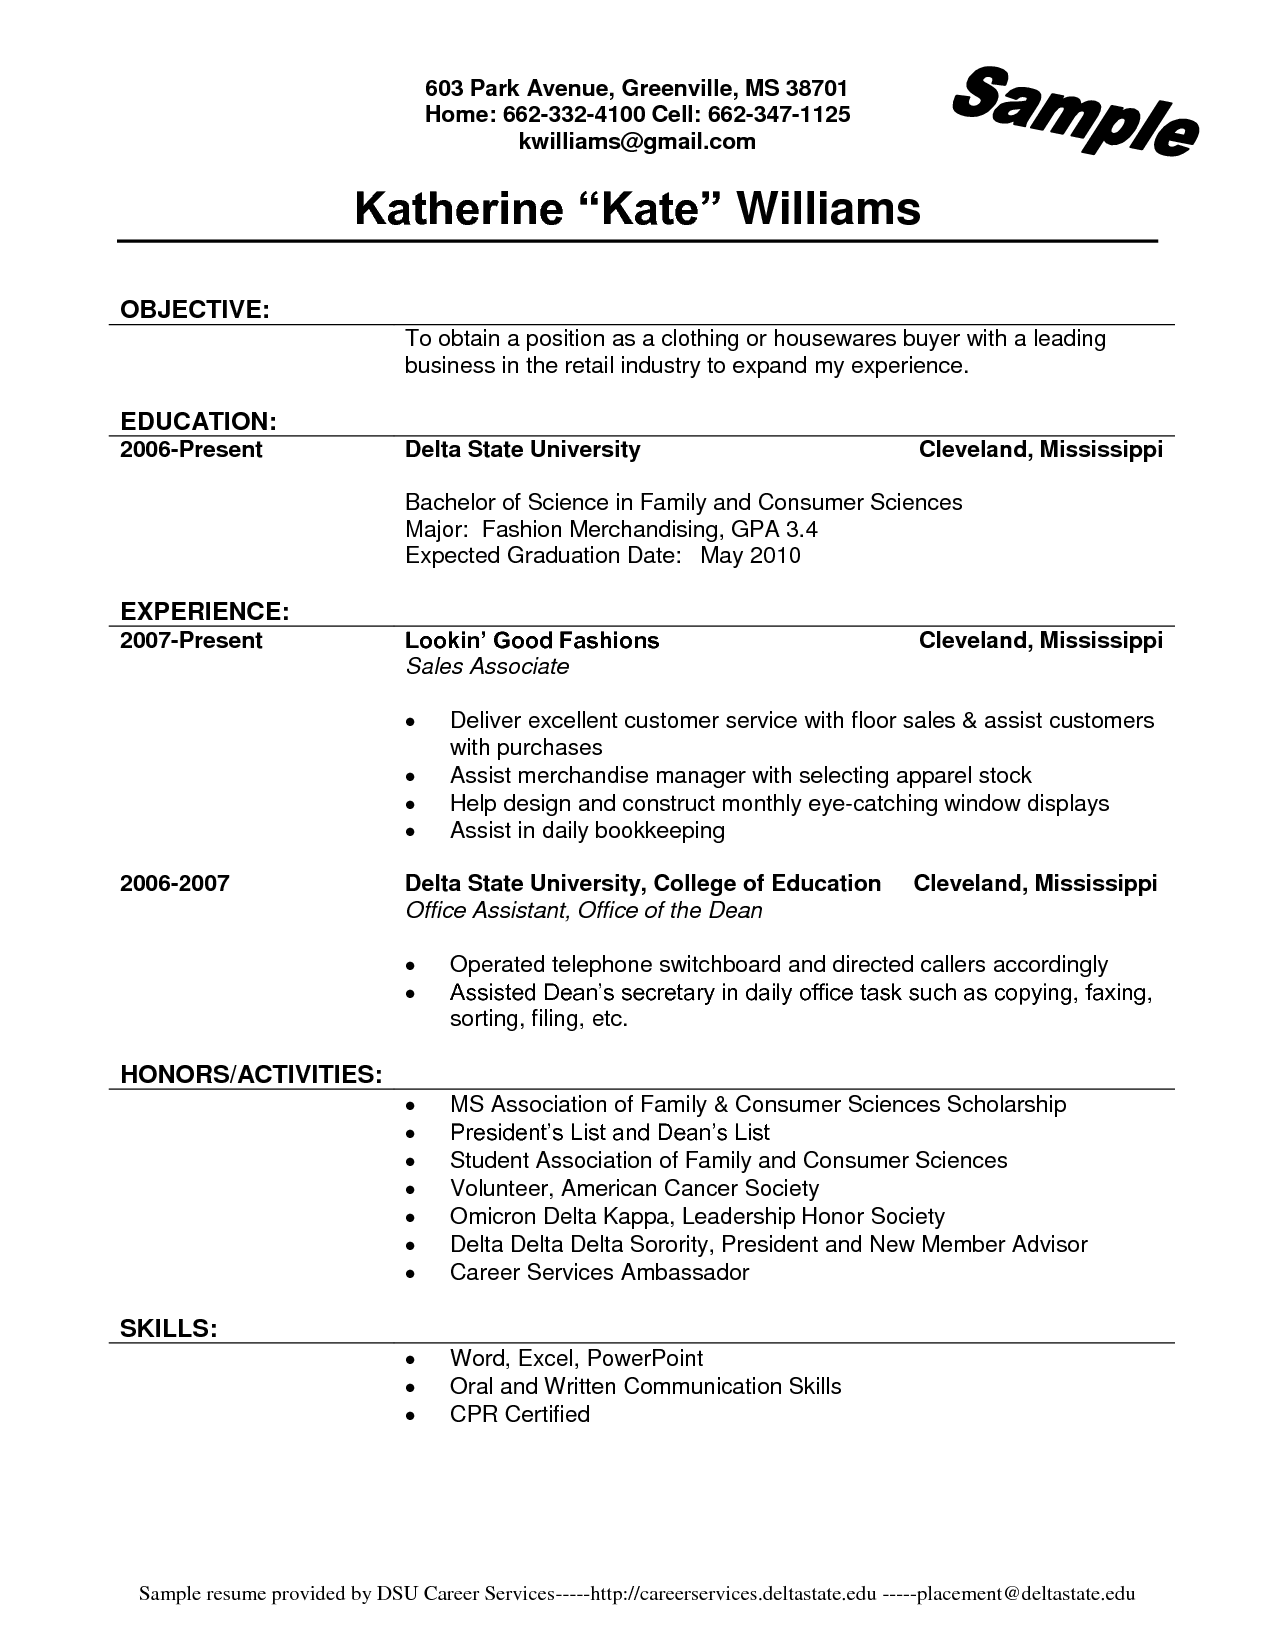 17 best images about resume tips ideas entry level 17 best images about resume tips ideas entry level nursing cover letter and resume examples